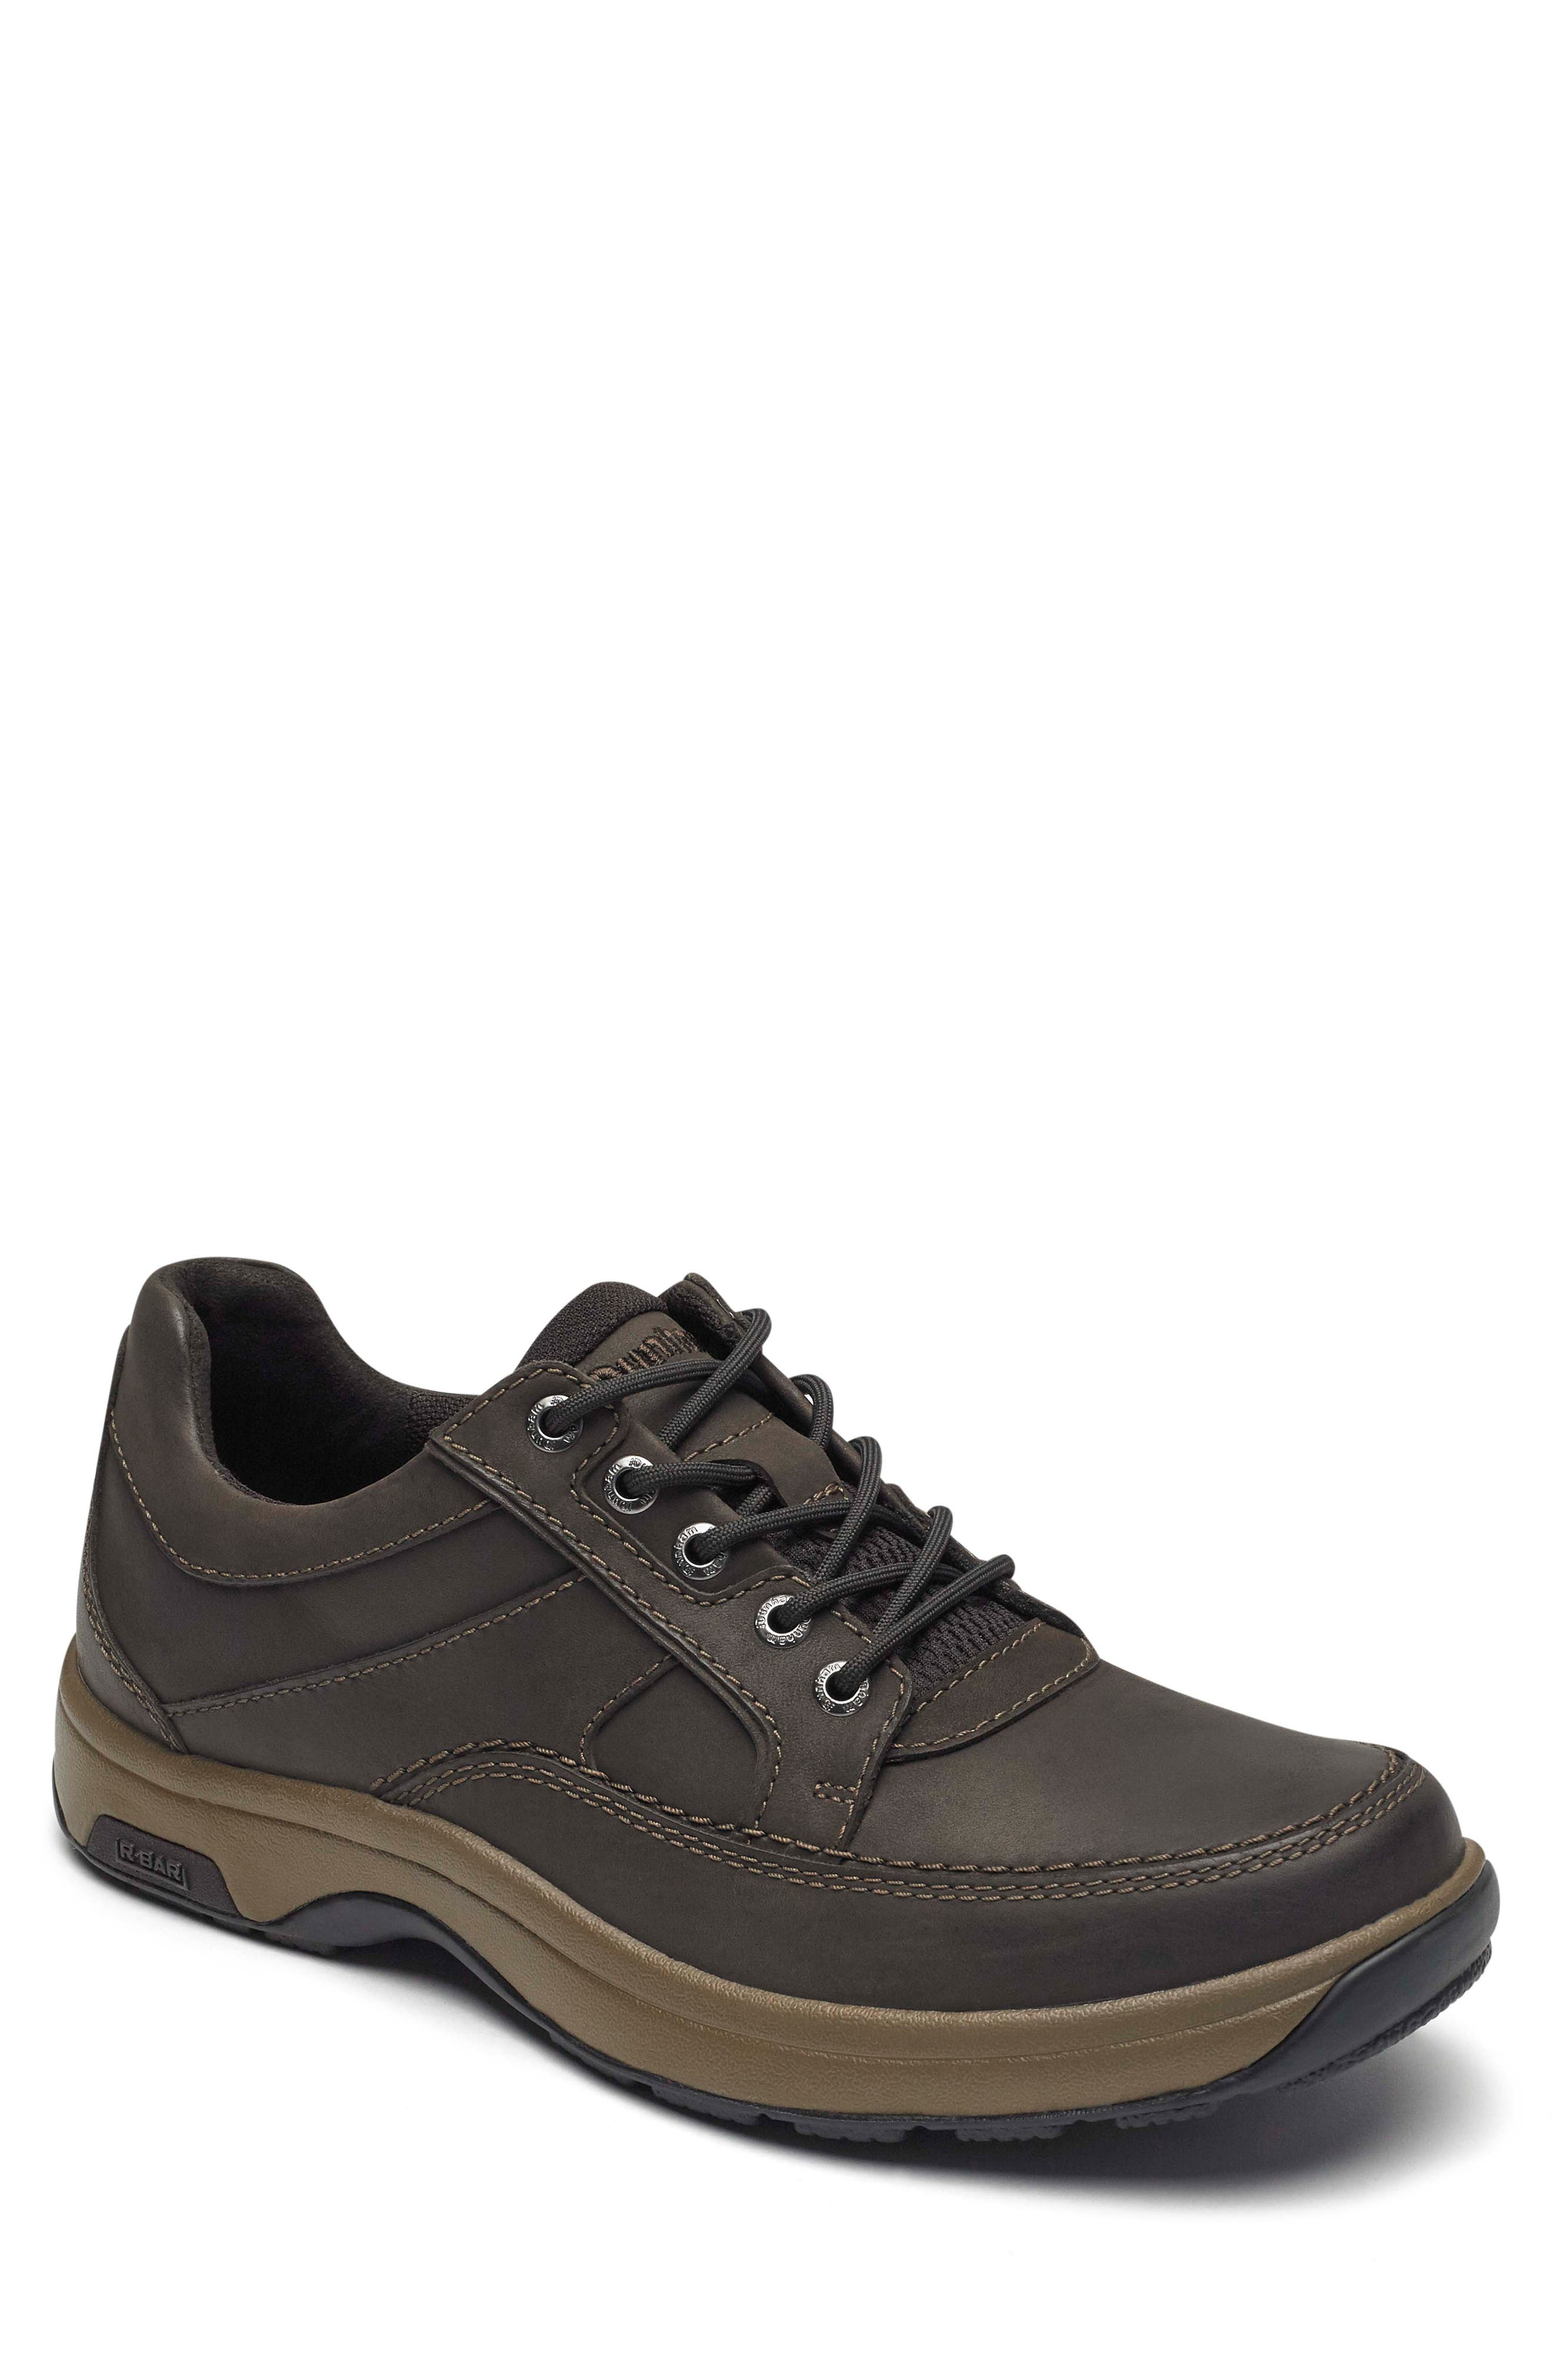 DUNHAM 'Midland' Sneaker, Main, color, BROWN LEATHER